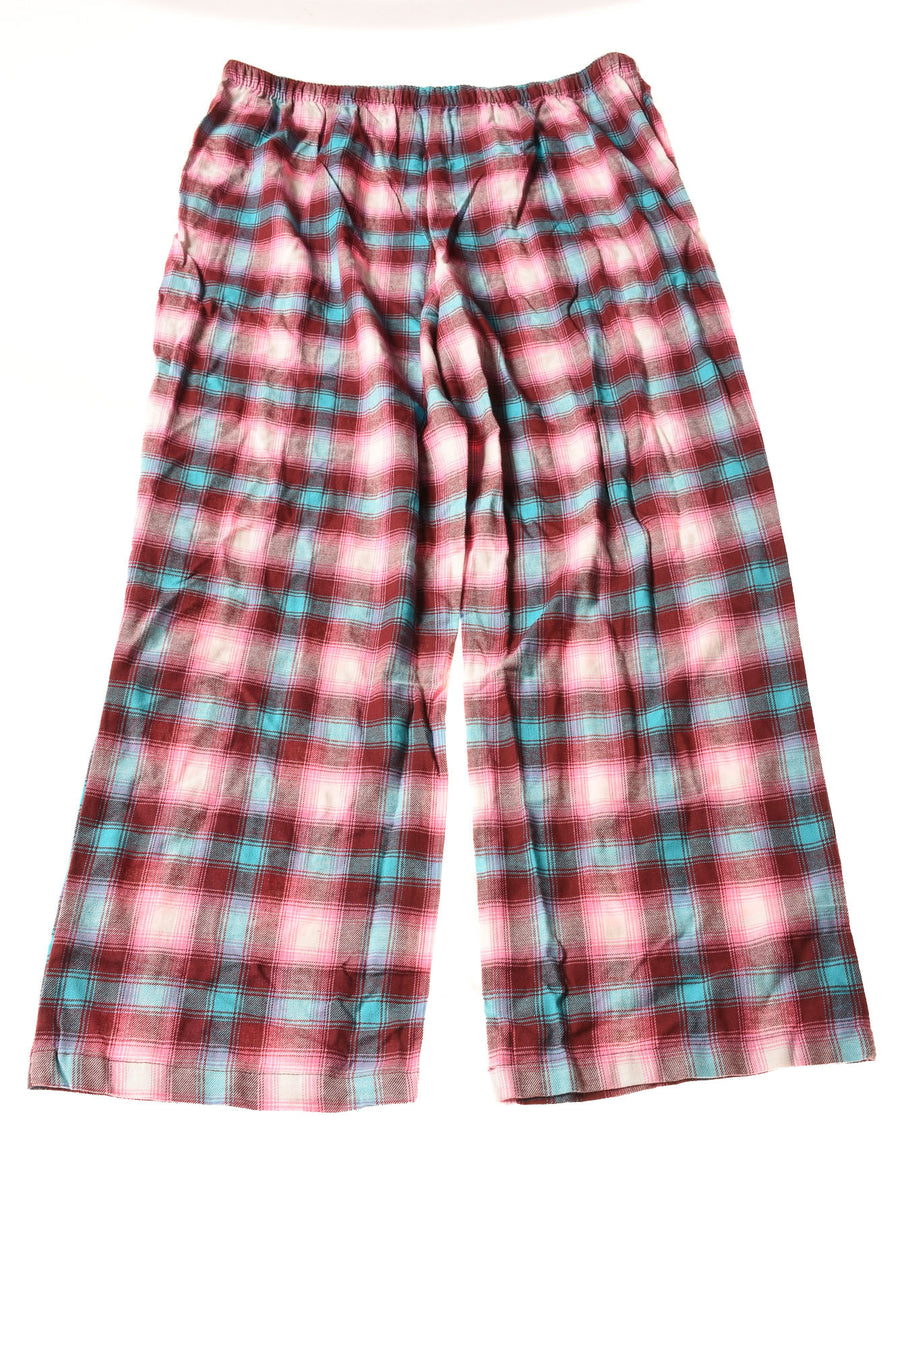 NEW Sleep Chic Women's Sleep Pants X-Large Multi-Color Plaid